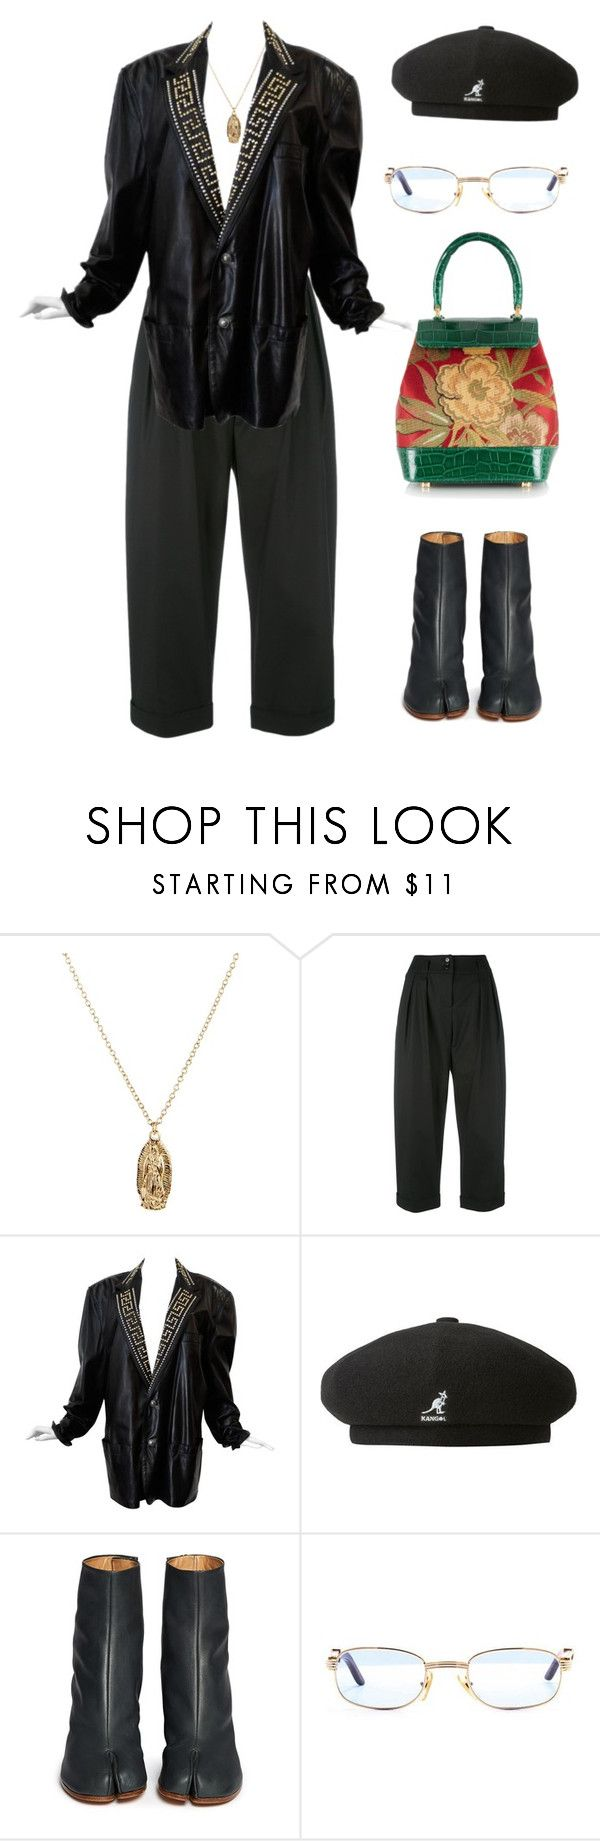 """""""Untitled #1270"""" by lucyshenton ❤ liked on Polyvore featuring ASOS, Moschino, Versace, kangol, Maison Margiela and Rubeus"""